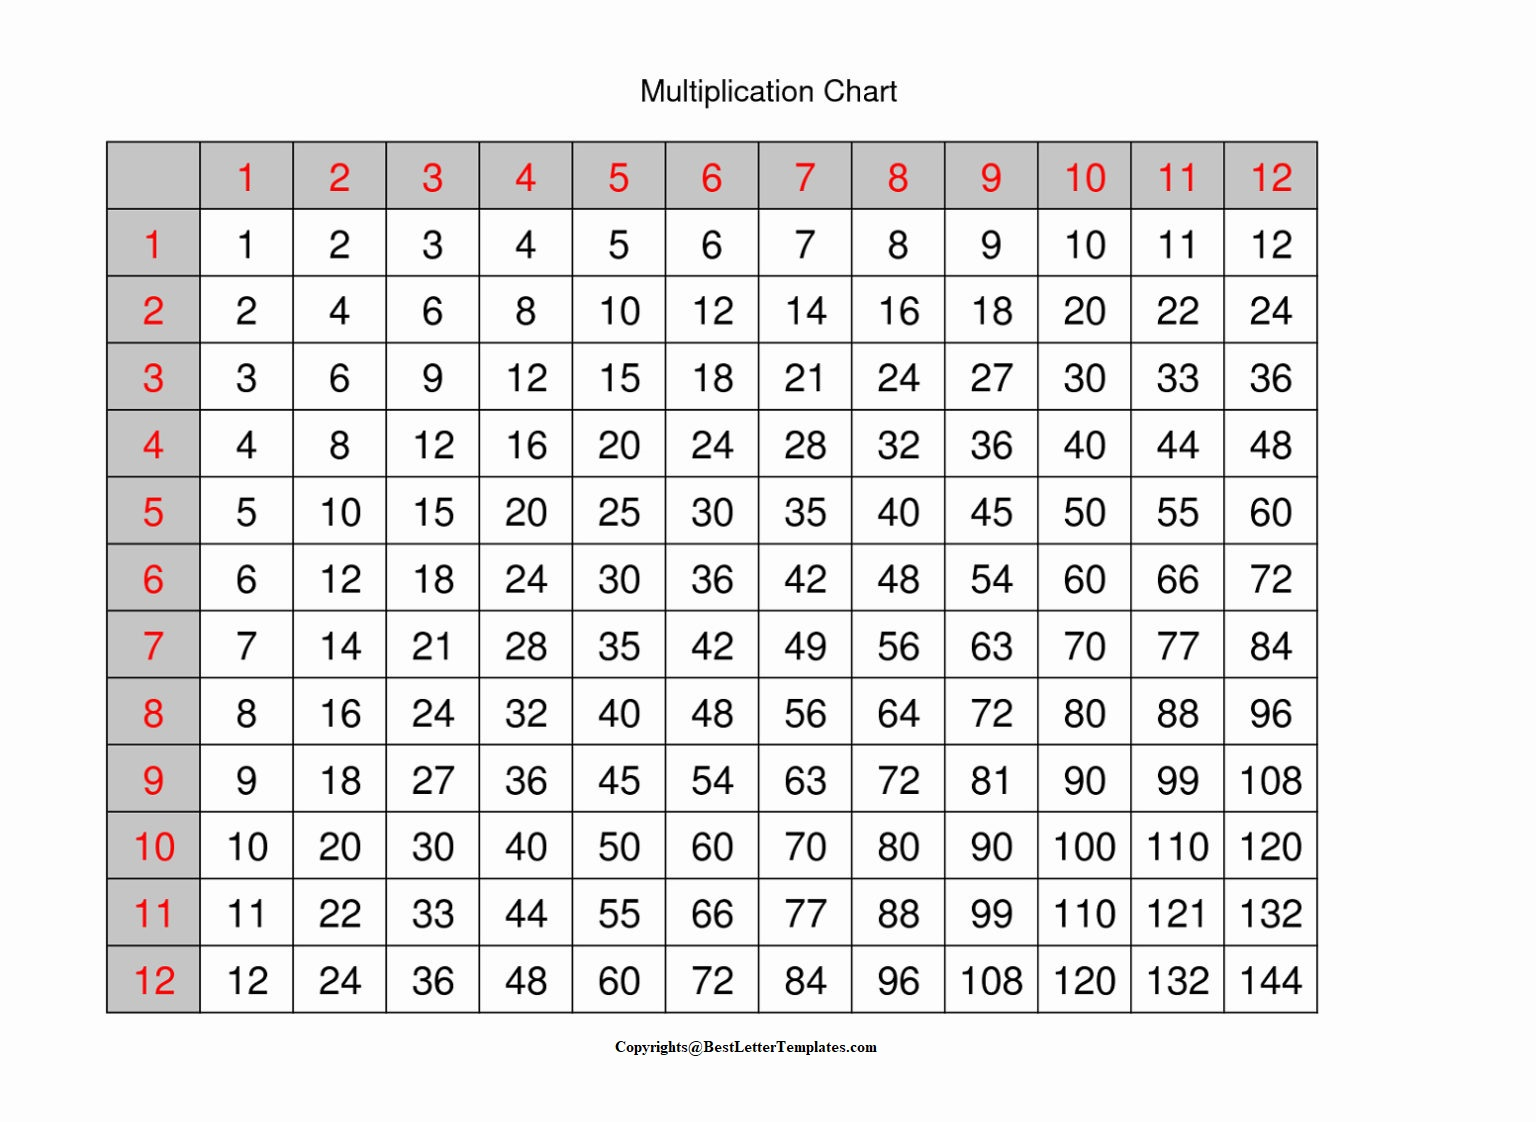 Multiplication Table | Best Letter Templates with Printable Pdf Multiplication Chart